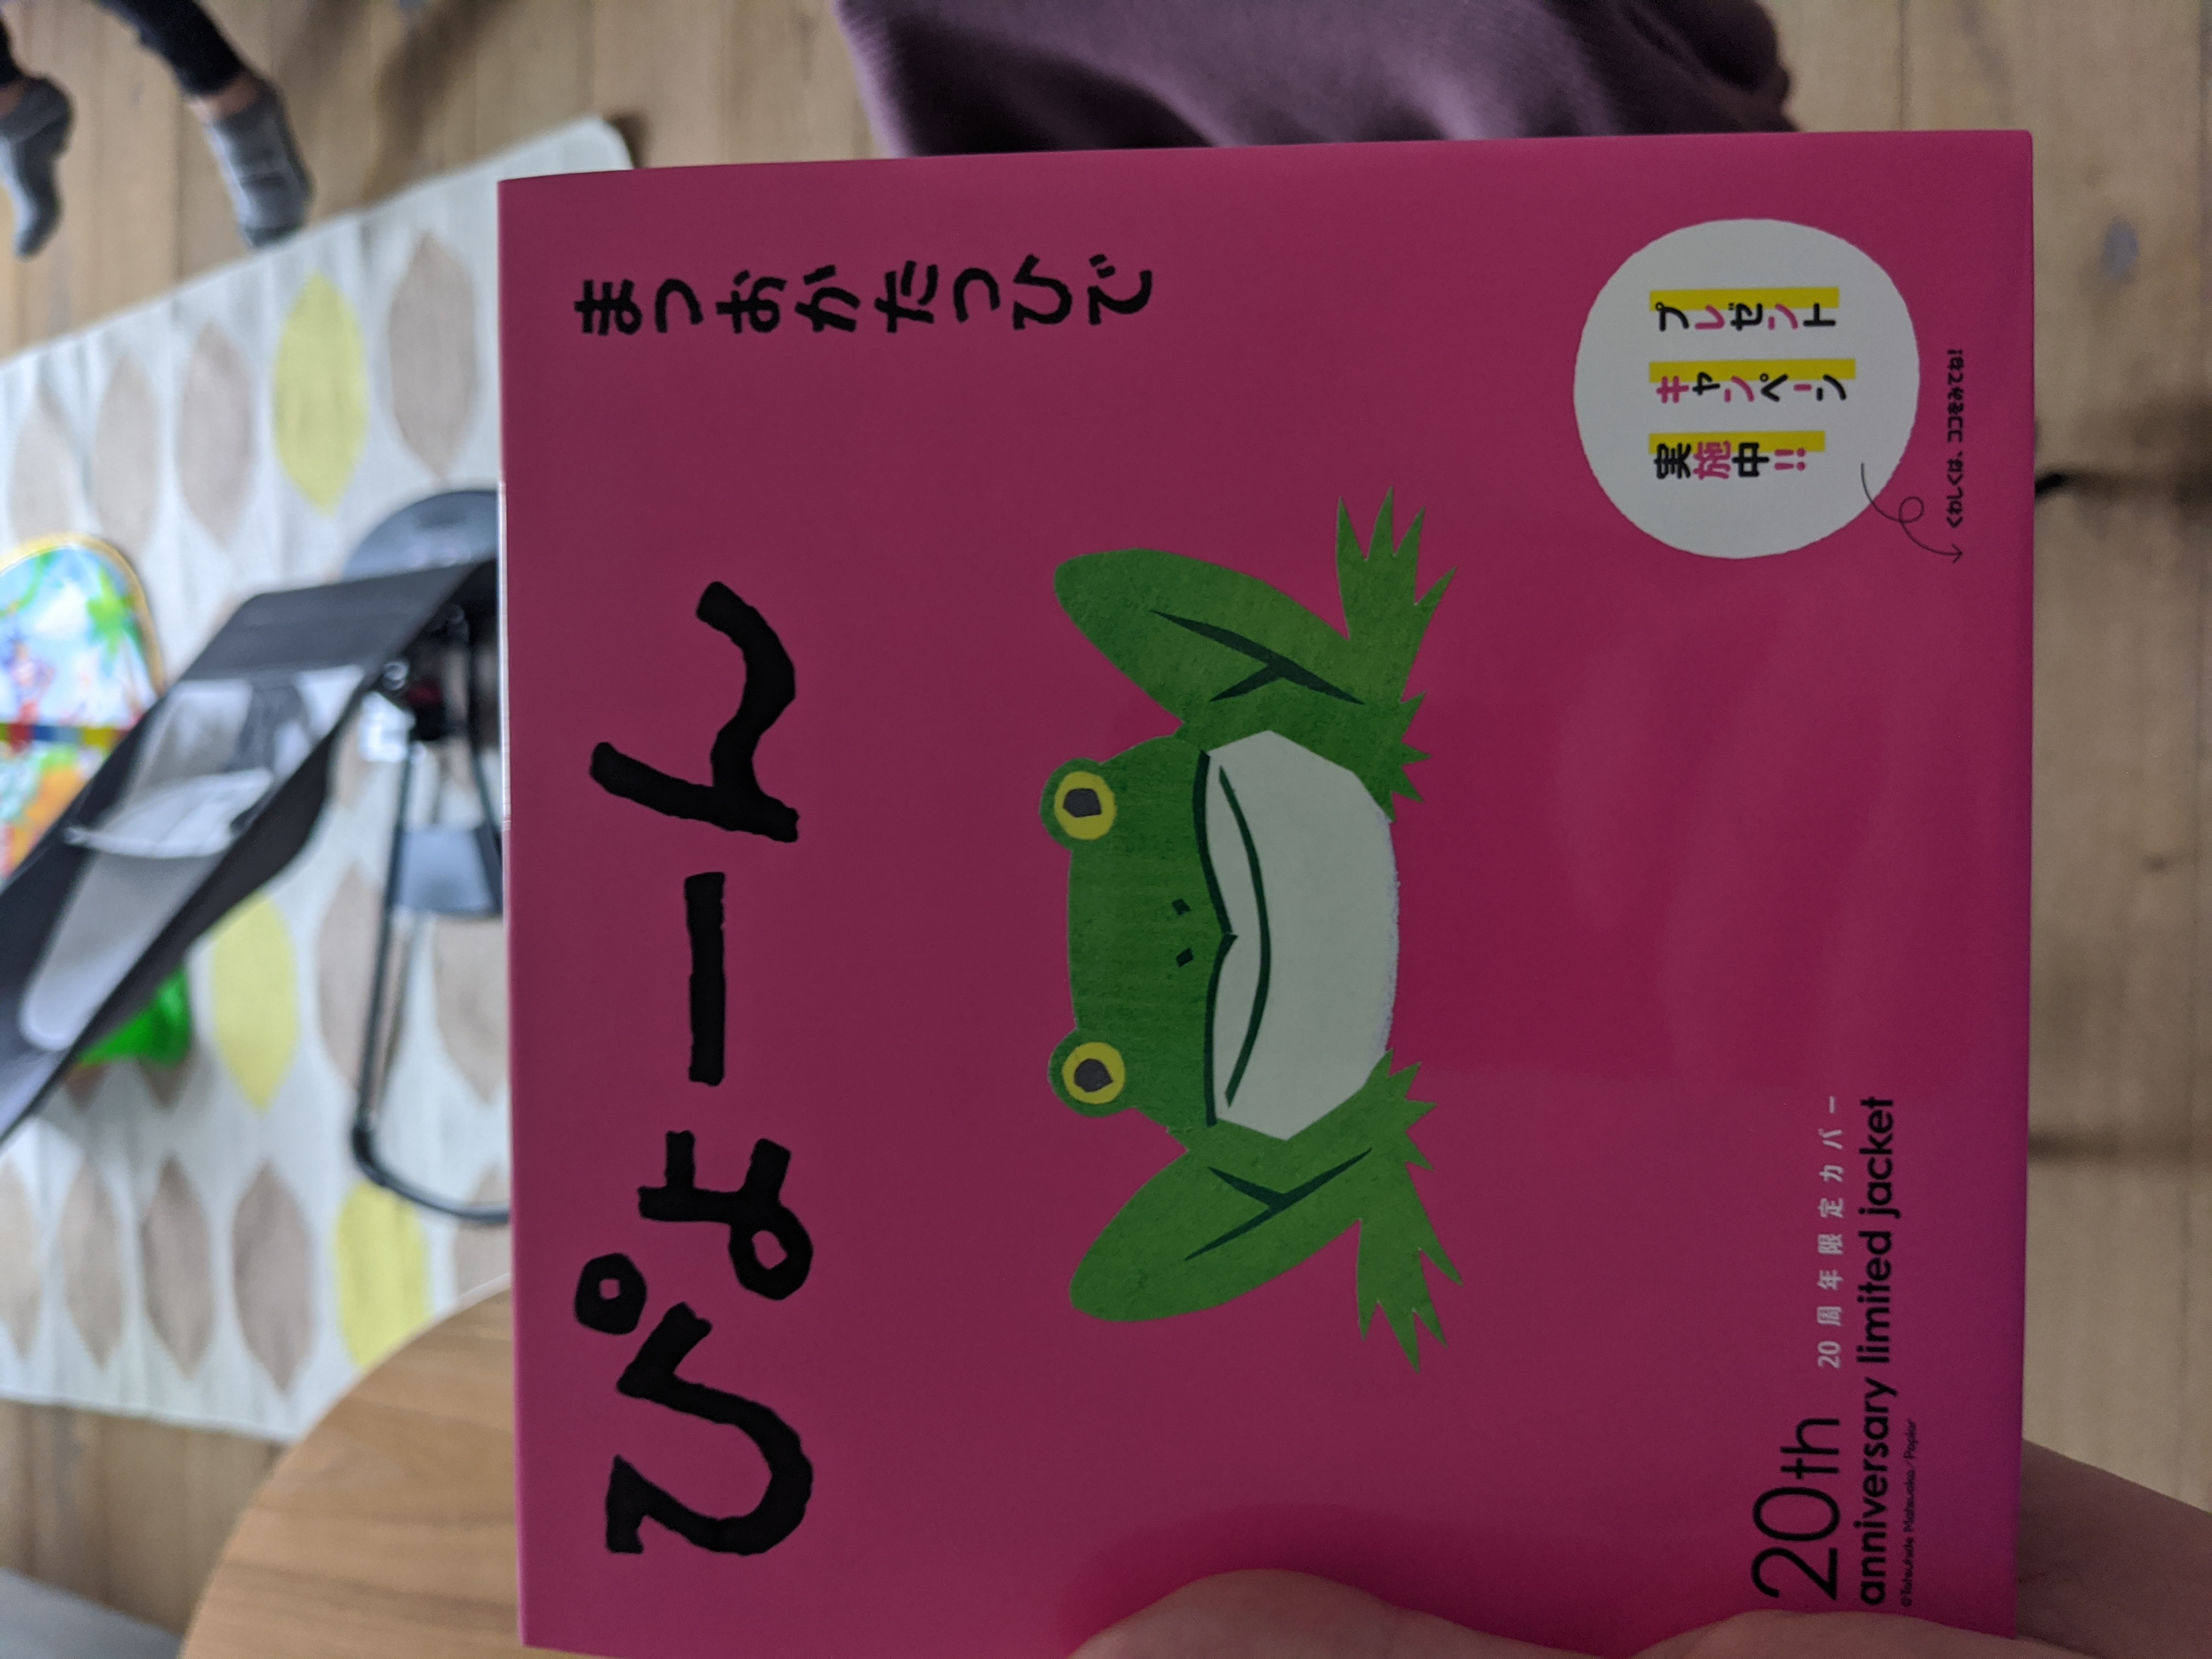 I Finished Reading My First Book In Japanese Today Modern Web Development With Chrome By Paul Kinlan